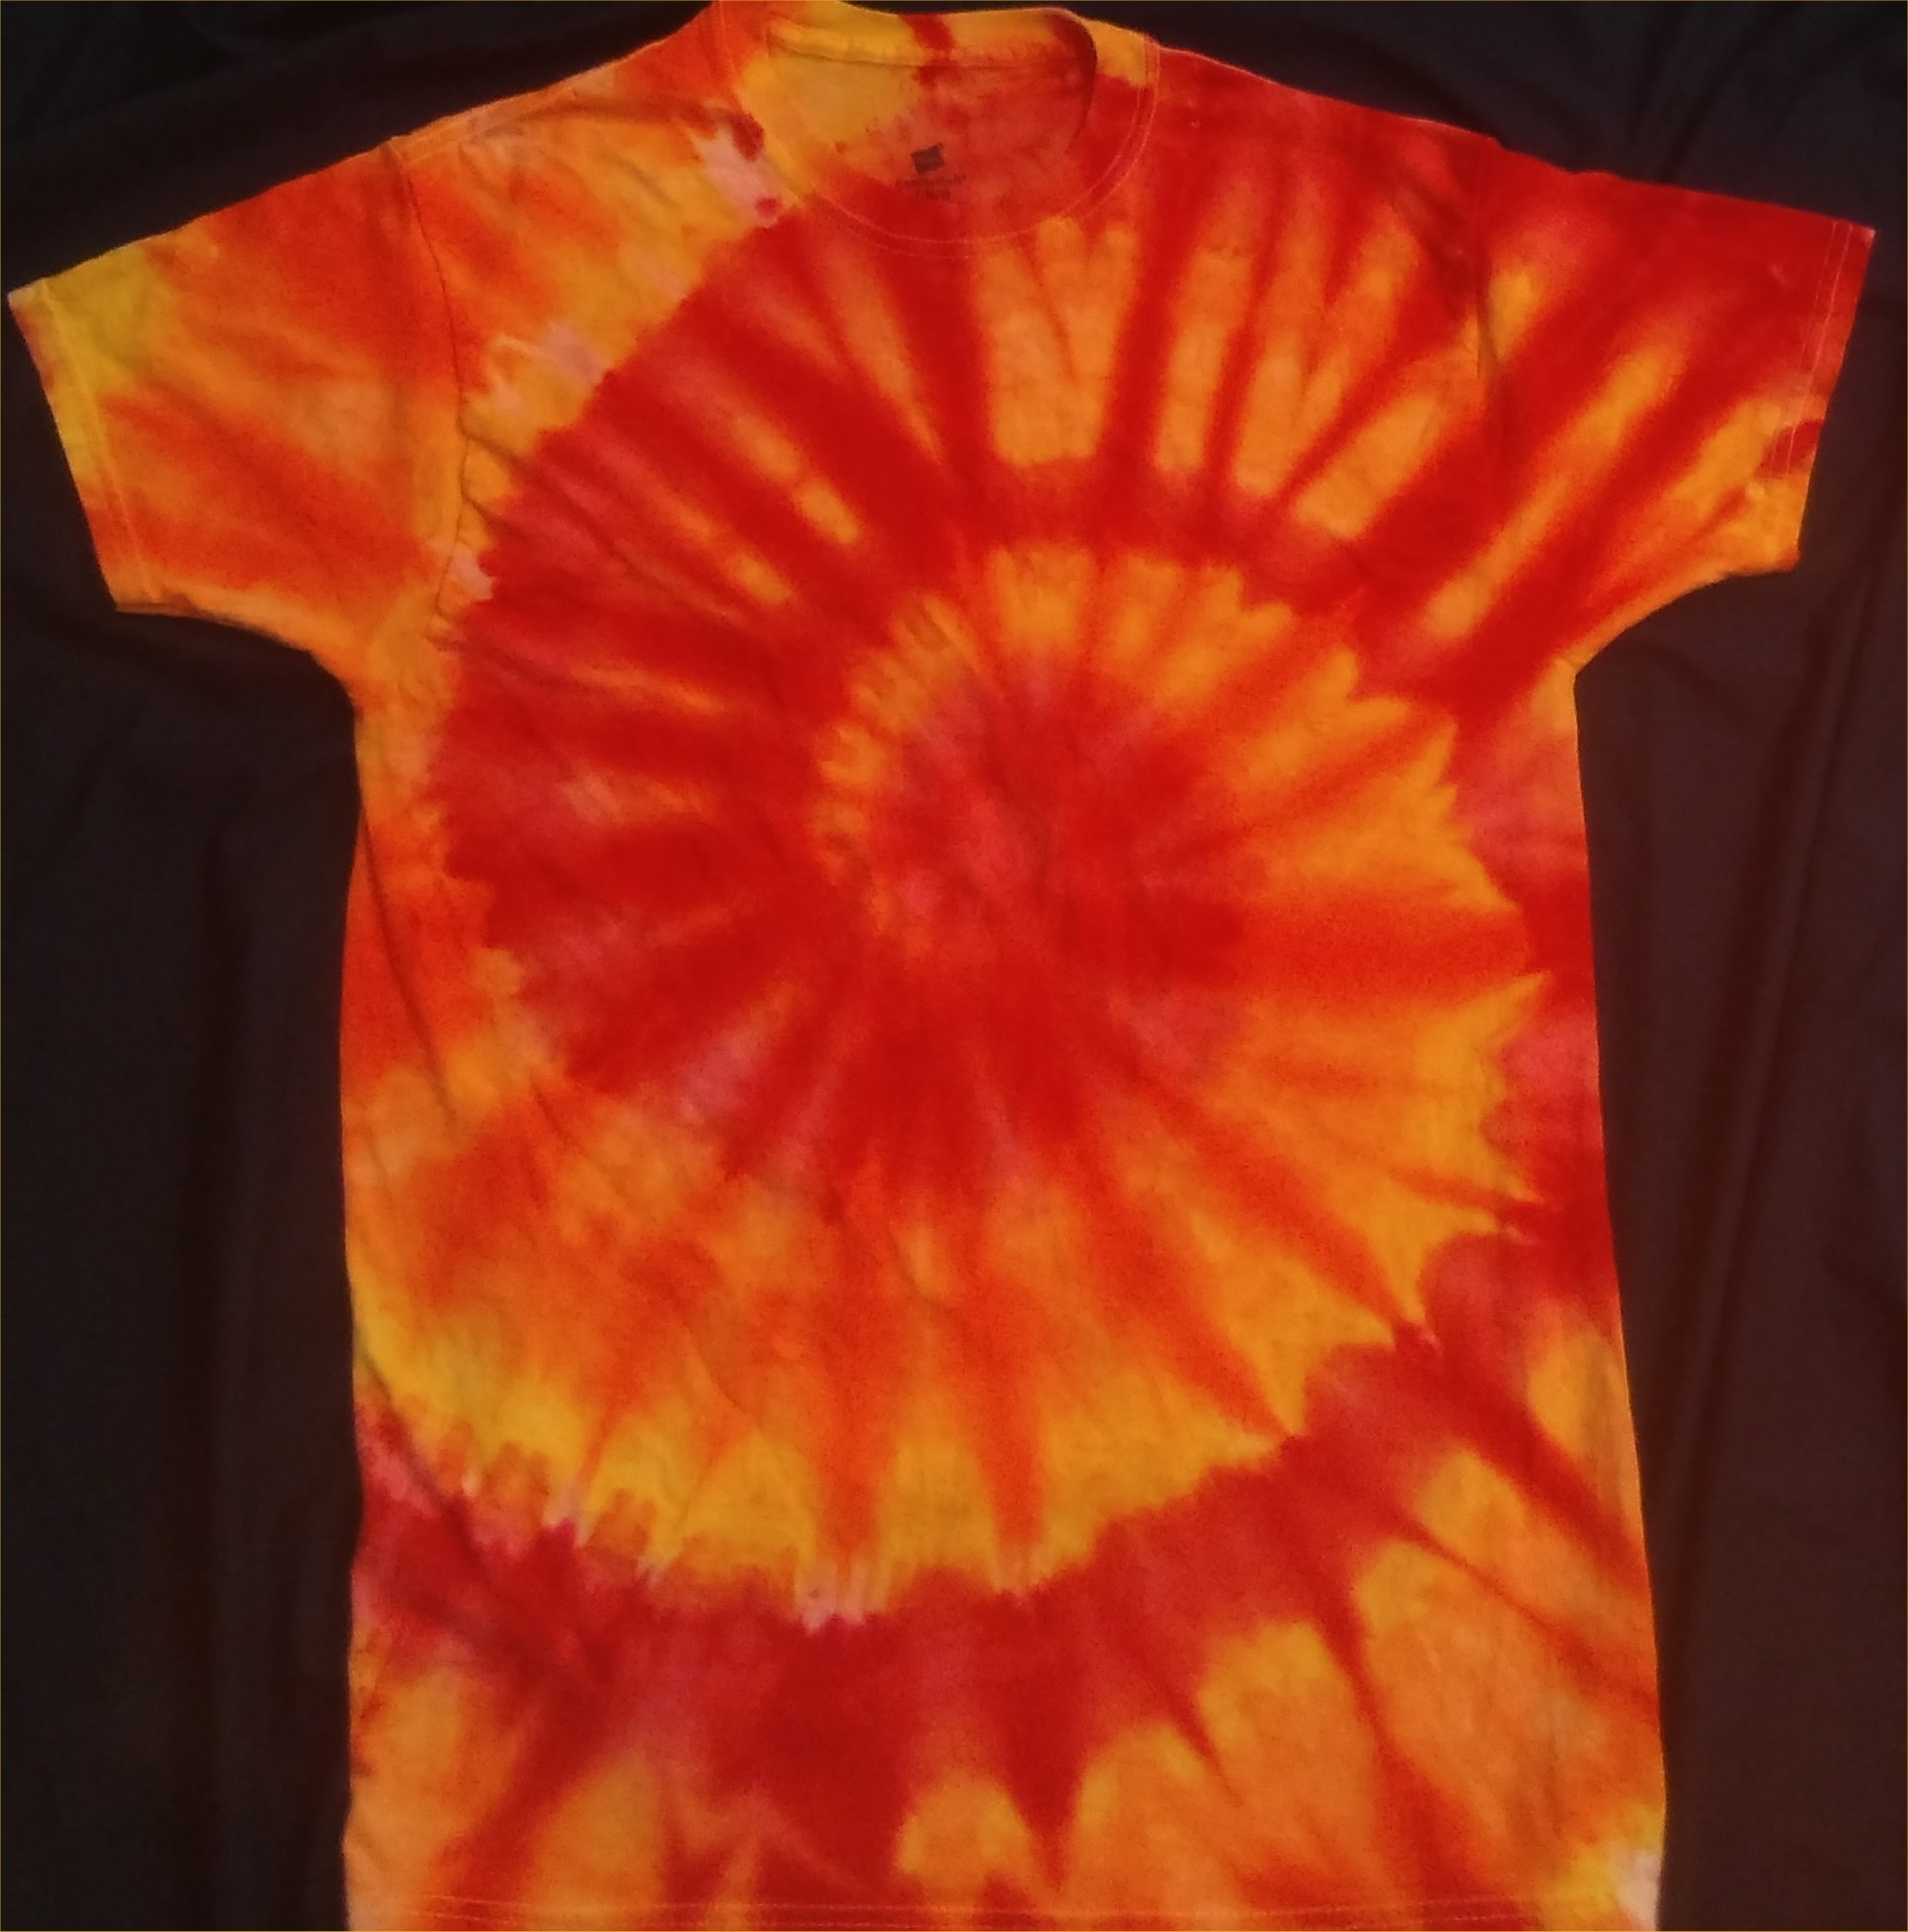 FIRE Element Lower Grounding Chakras Ice Dye Size M